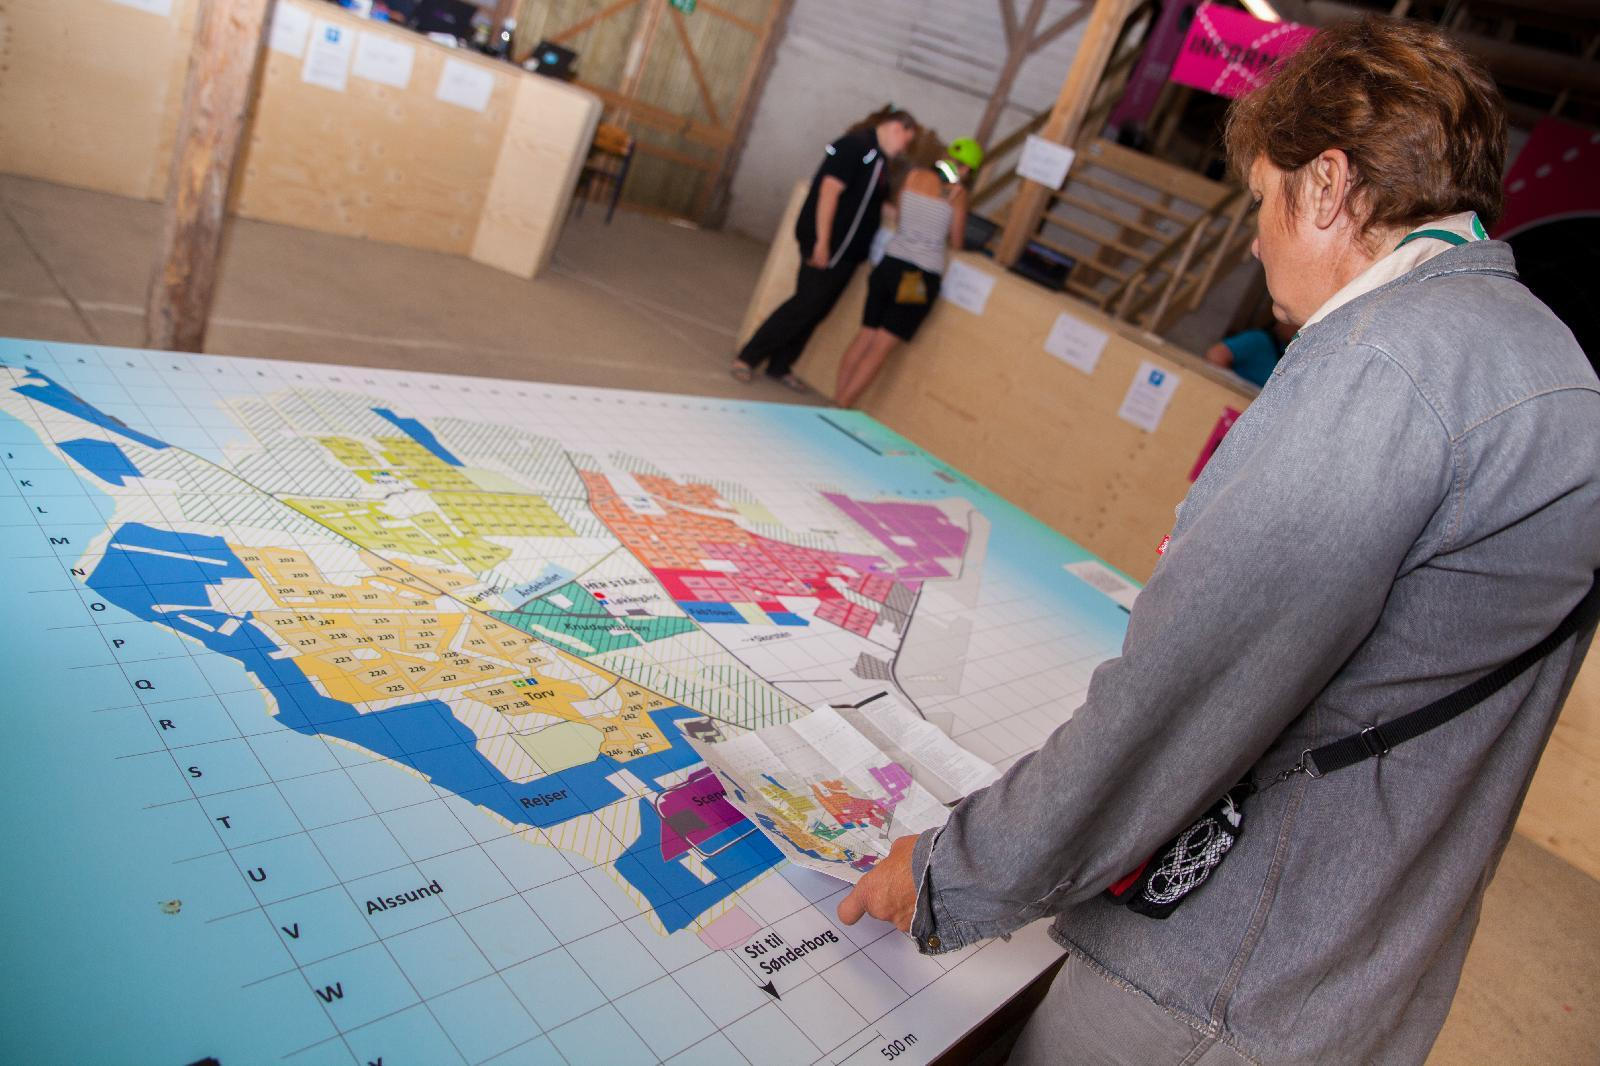 Participants and visitors can use the big map to find their way around the jamboree.